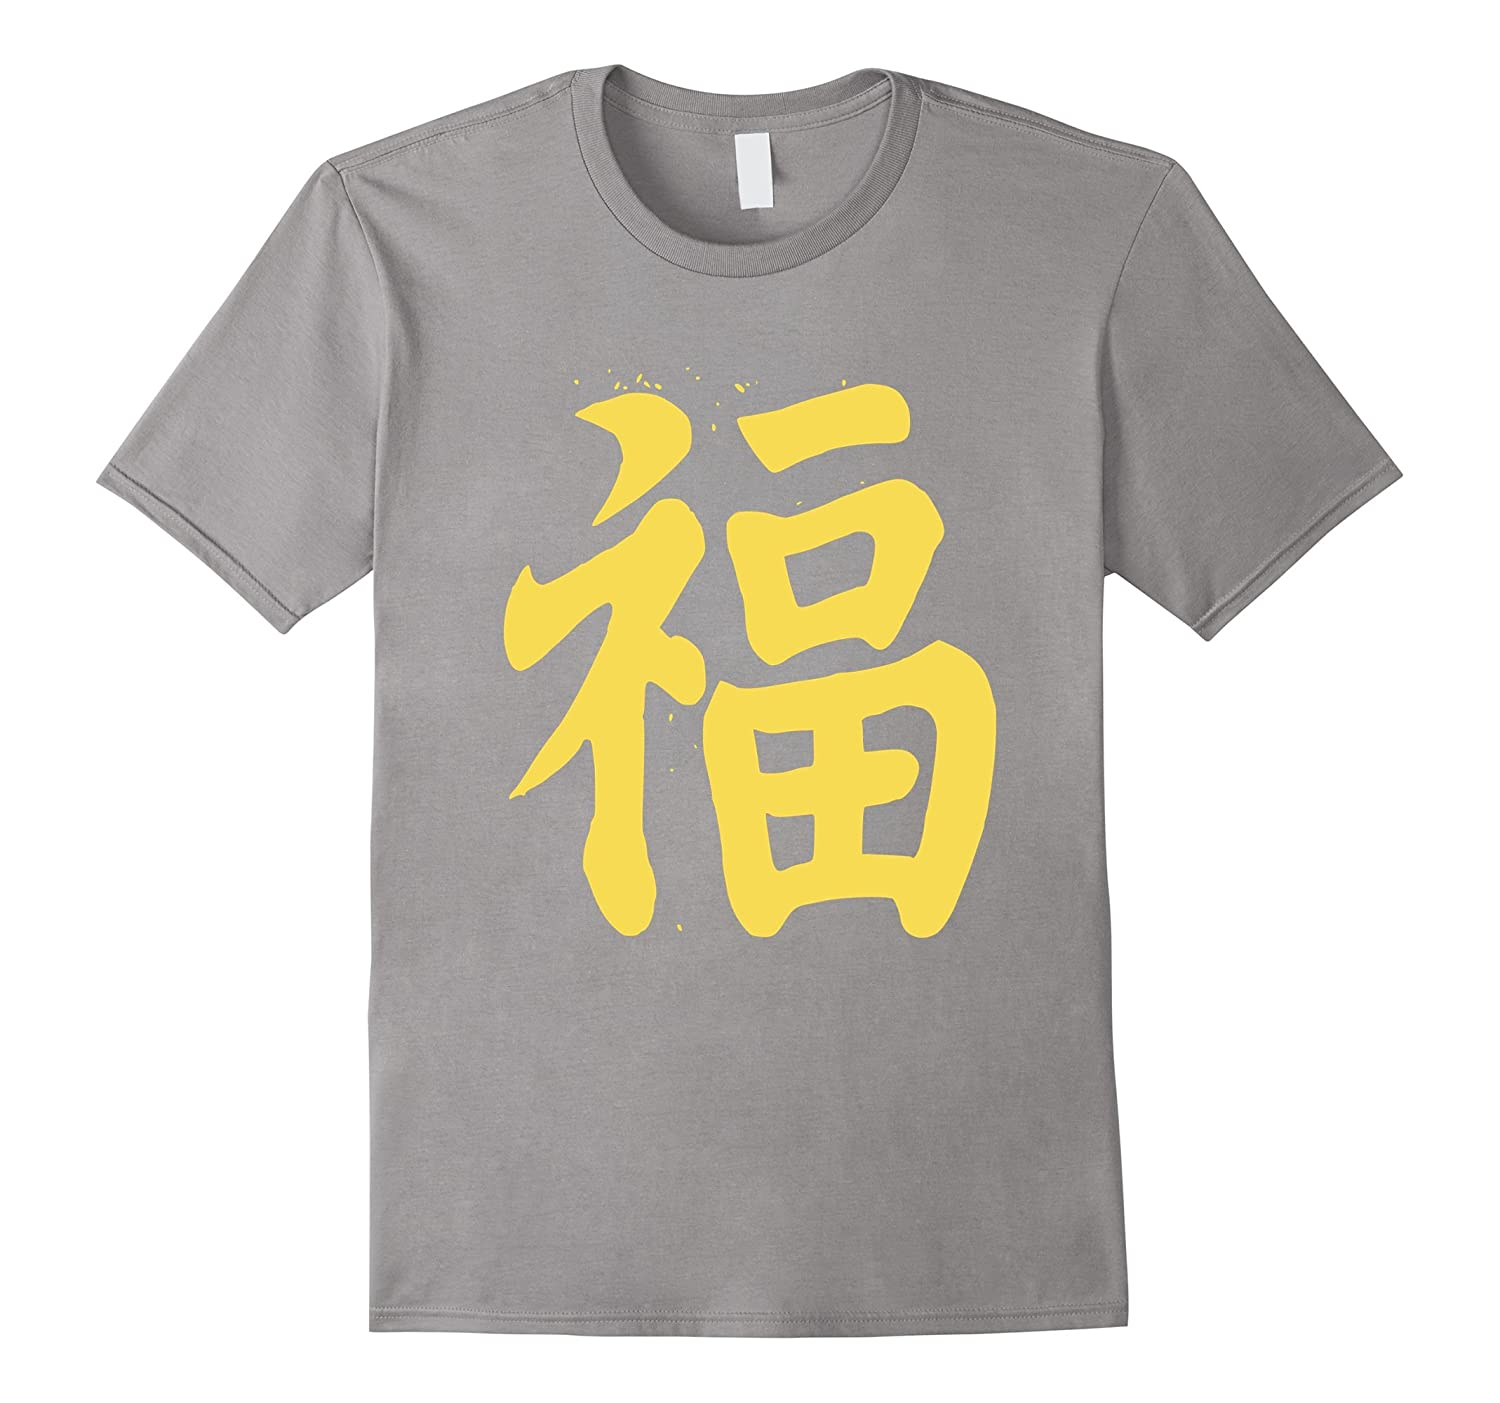 Chinese good luck symbol letters lucky happiness t shirt goatstee chinese good luck symbol letters lucky happiness t shirt buycottarizona Images